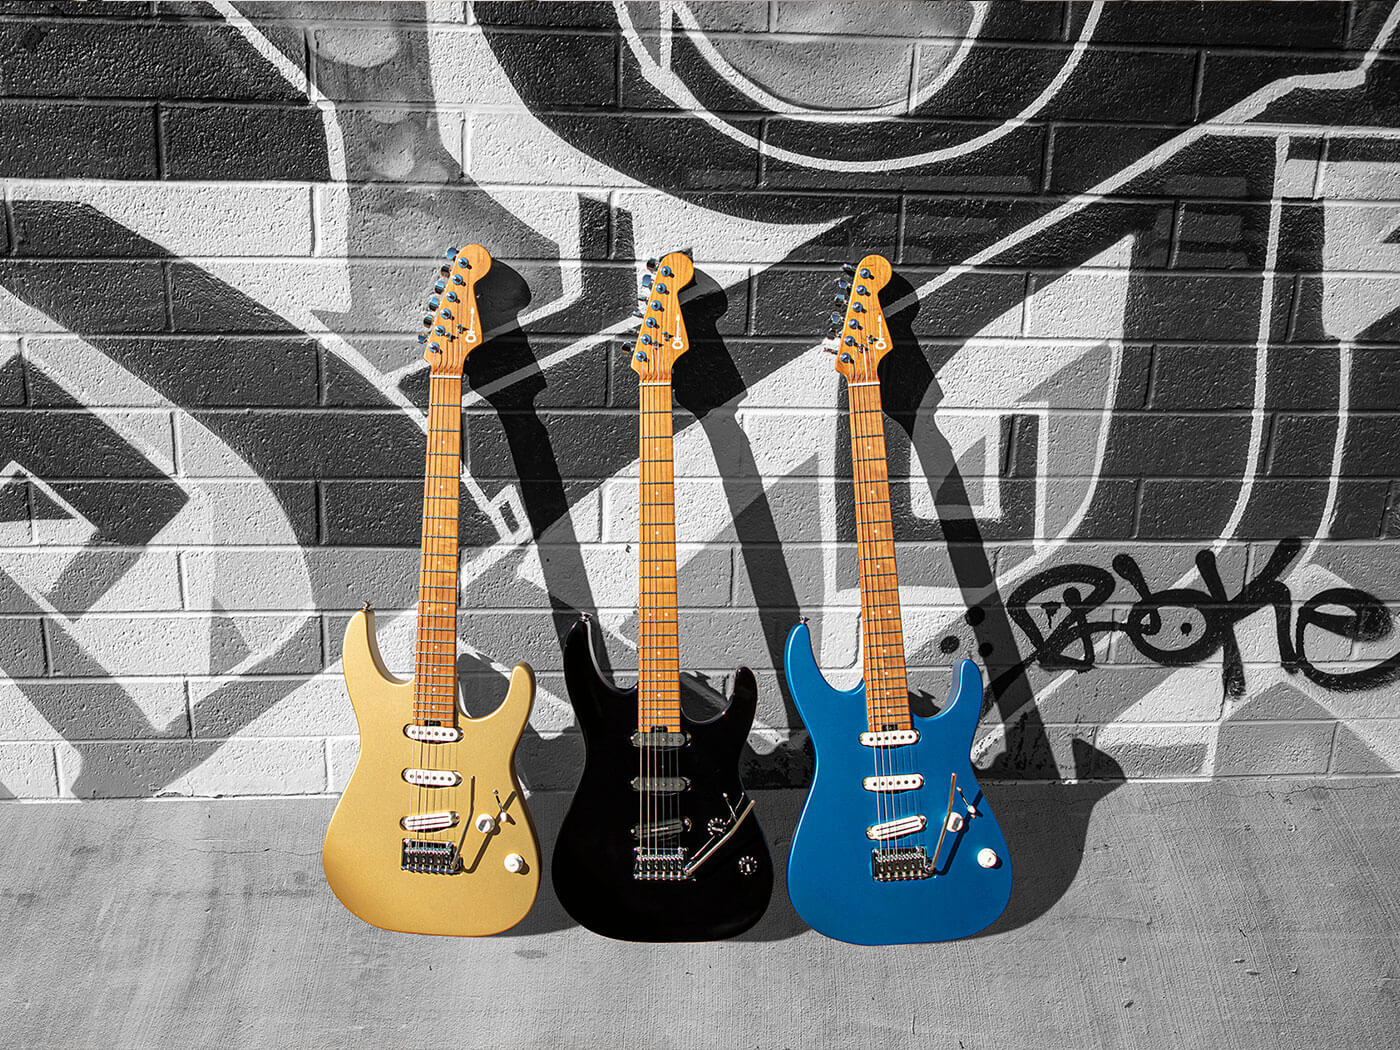 The Charvel Pro-Mod DK22 in its different finishes.